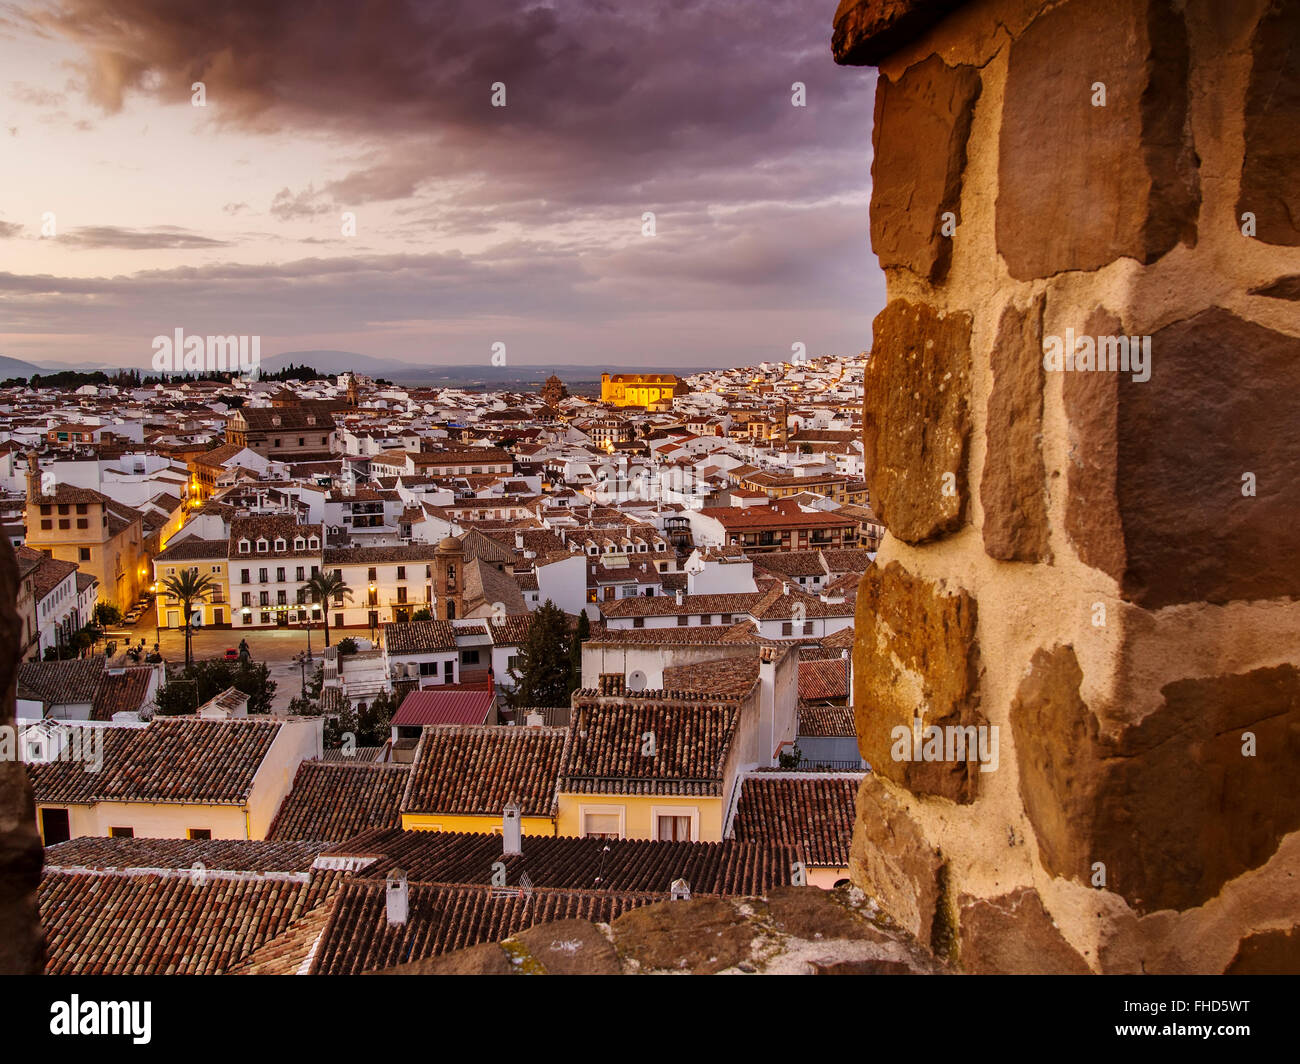 Sunset, monumental city Antequera, Malaga province. Andalusia southern Spain Stock Photo